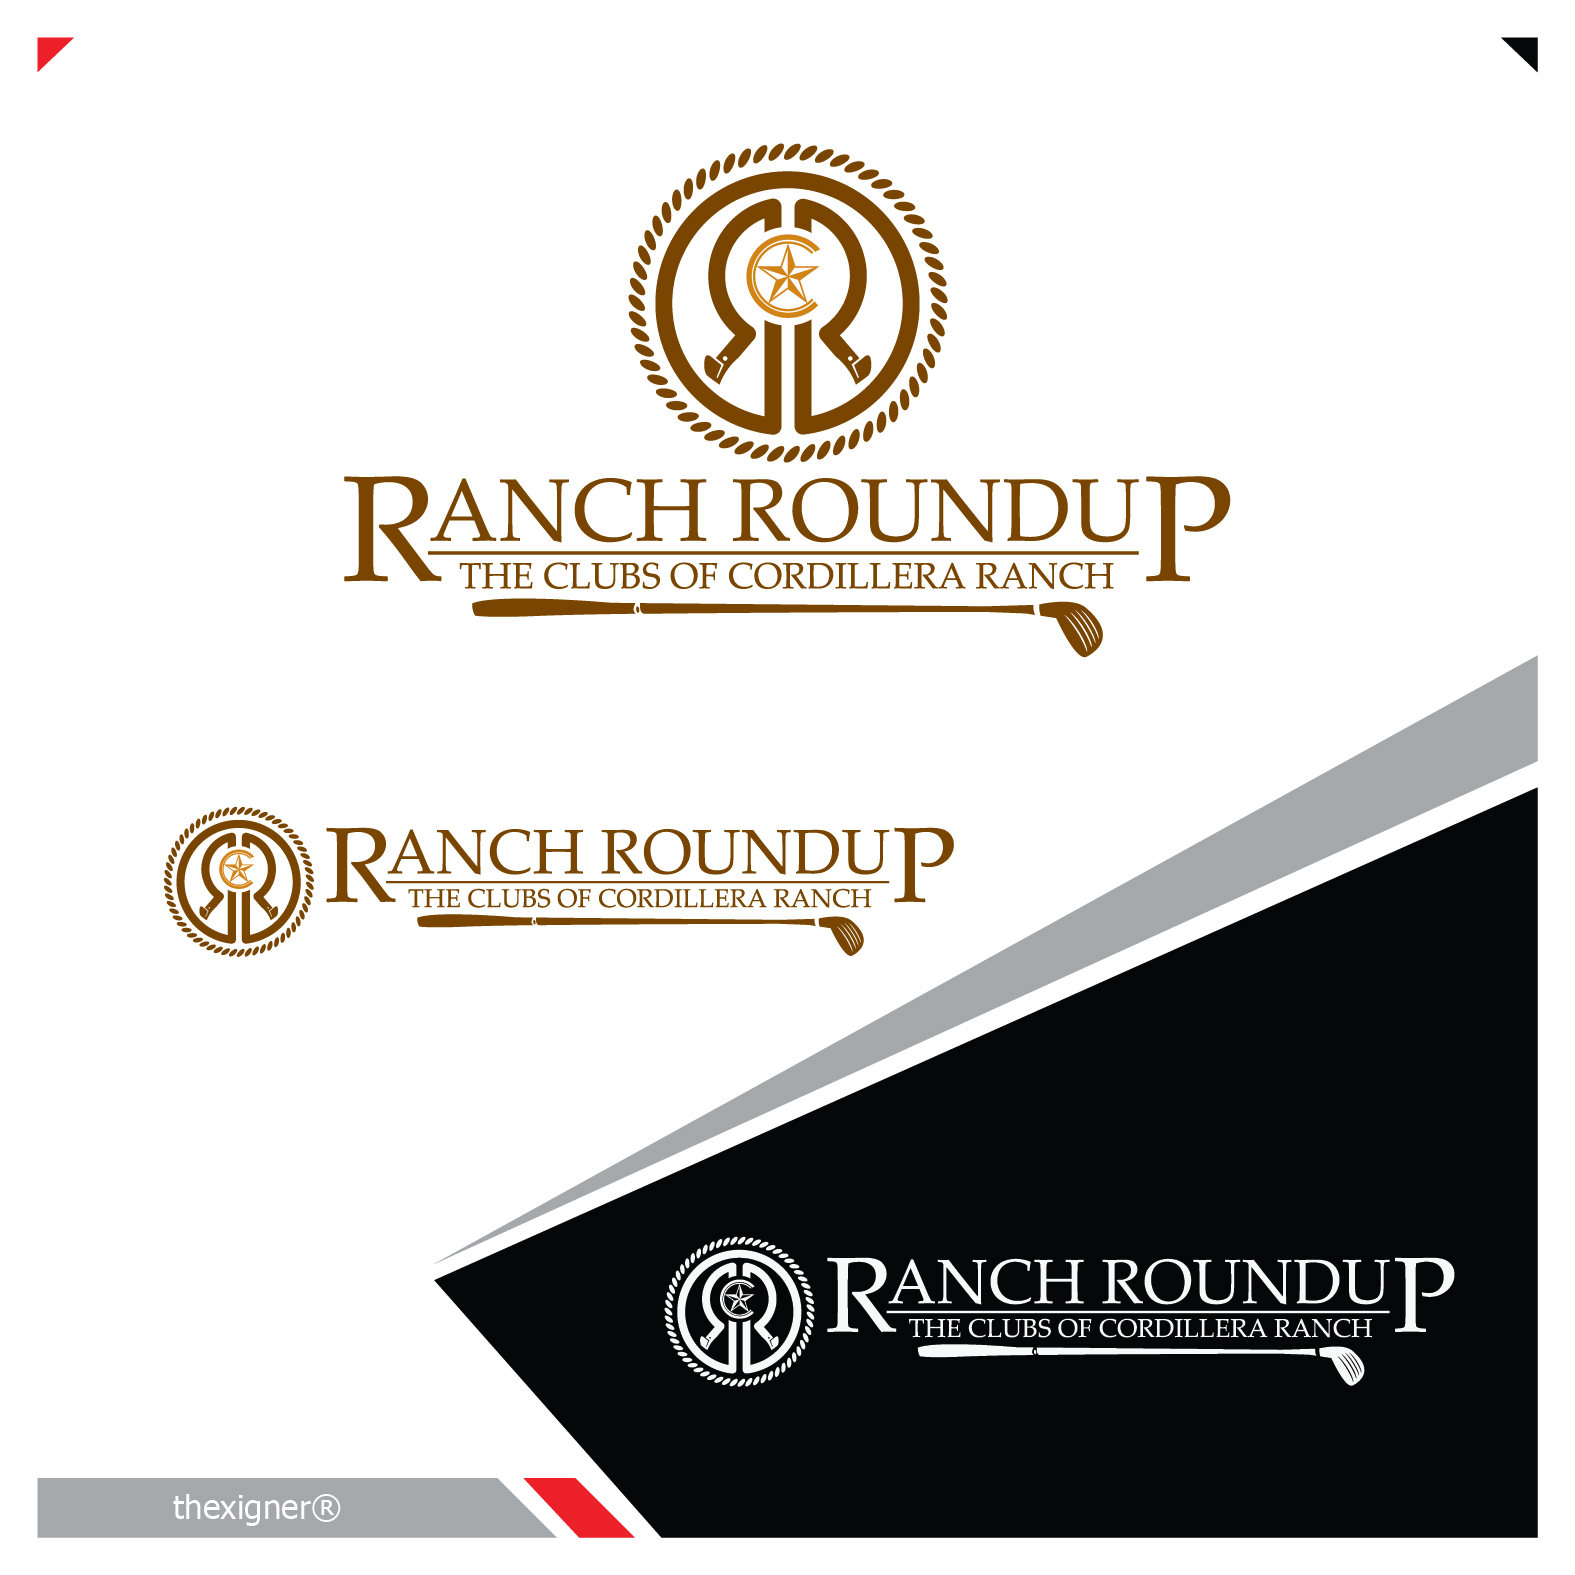 Logo Design by lagalag - Entry No. 45 in the Logo Design Contest Captivating Logo Design for Ranch Roundup.